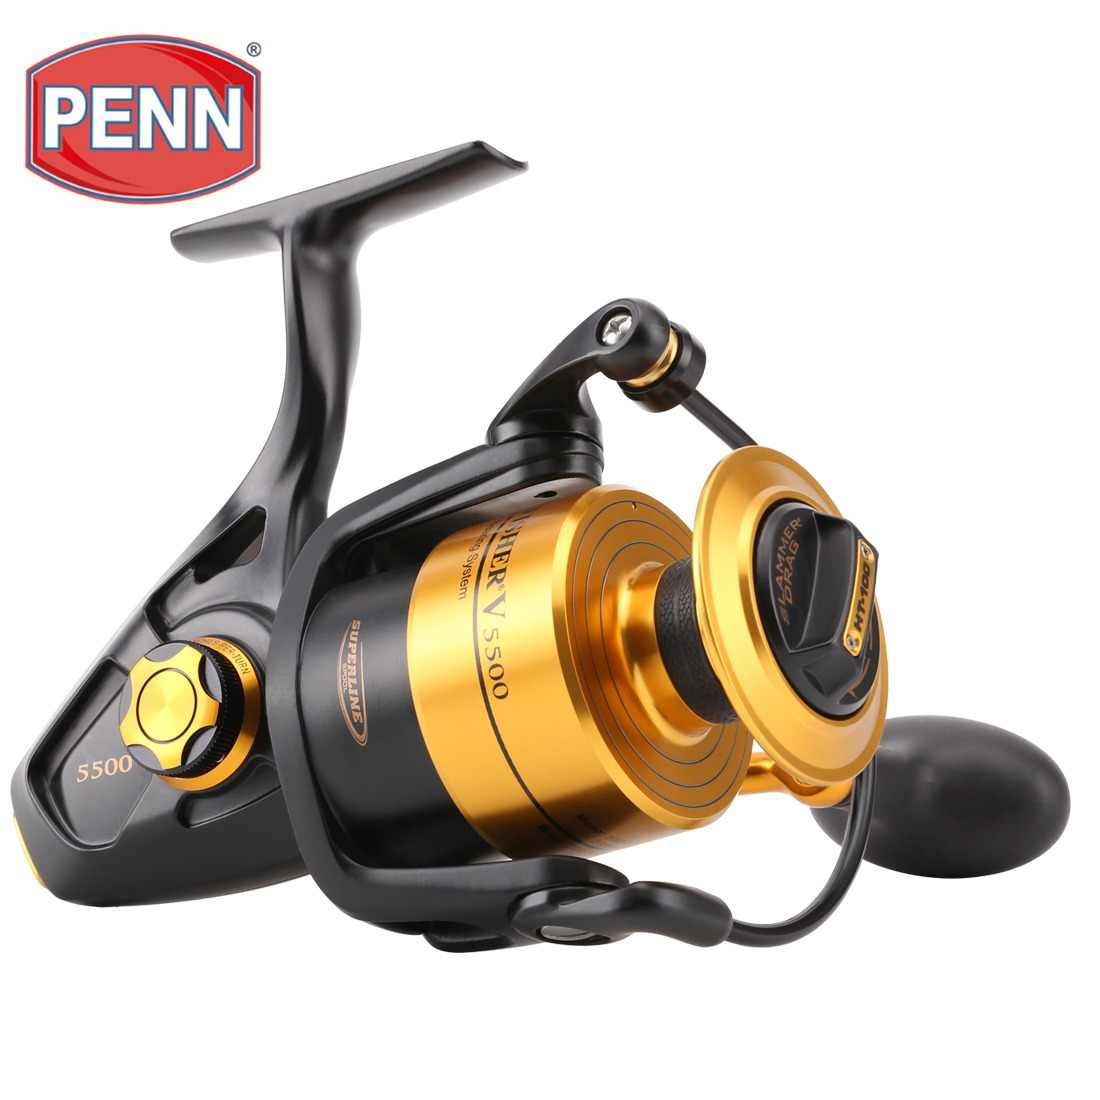 Original PENN SPINFISHER V SSV 3500-10500 Spinning Fishing Reel 5+1BB Full Metal Body HT-100 Saltwater Boat fishing reel